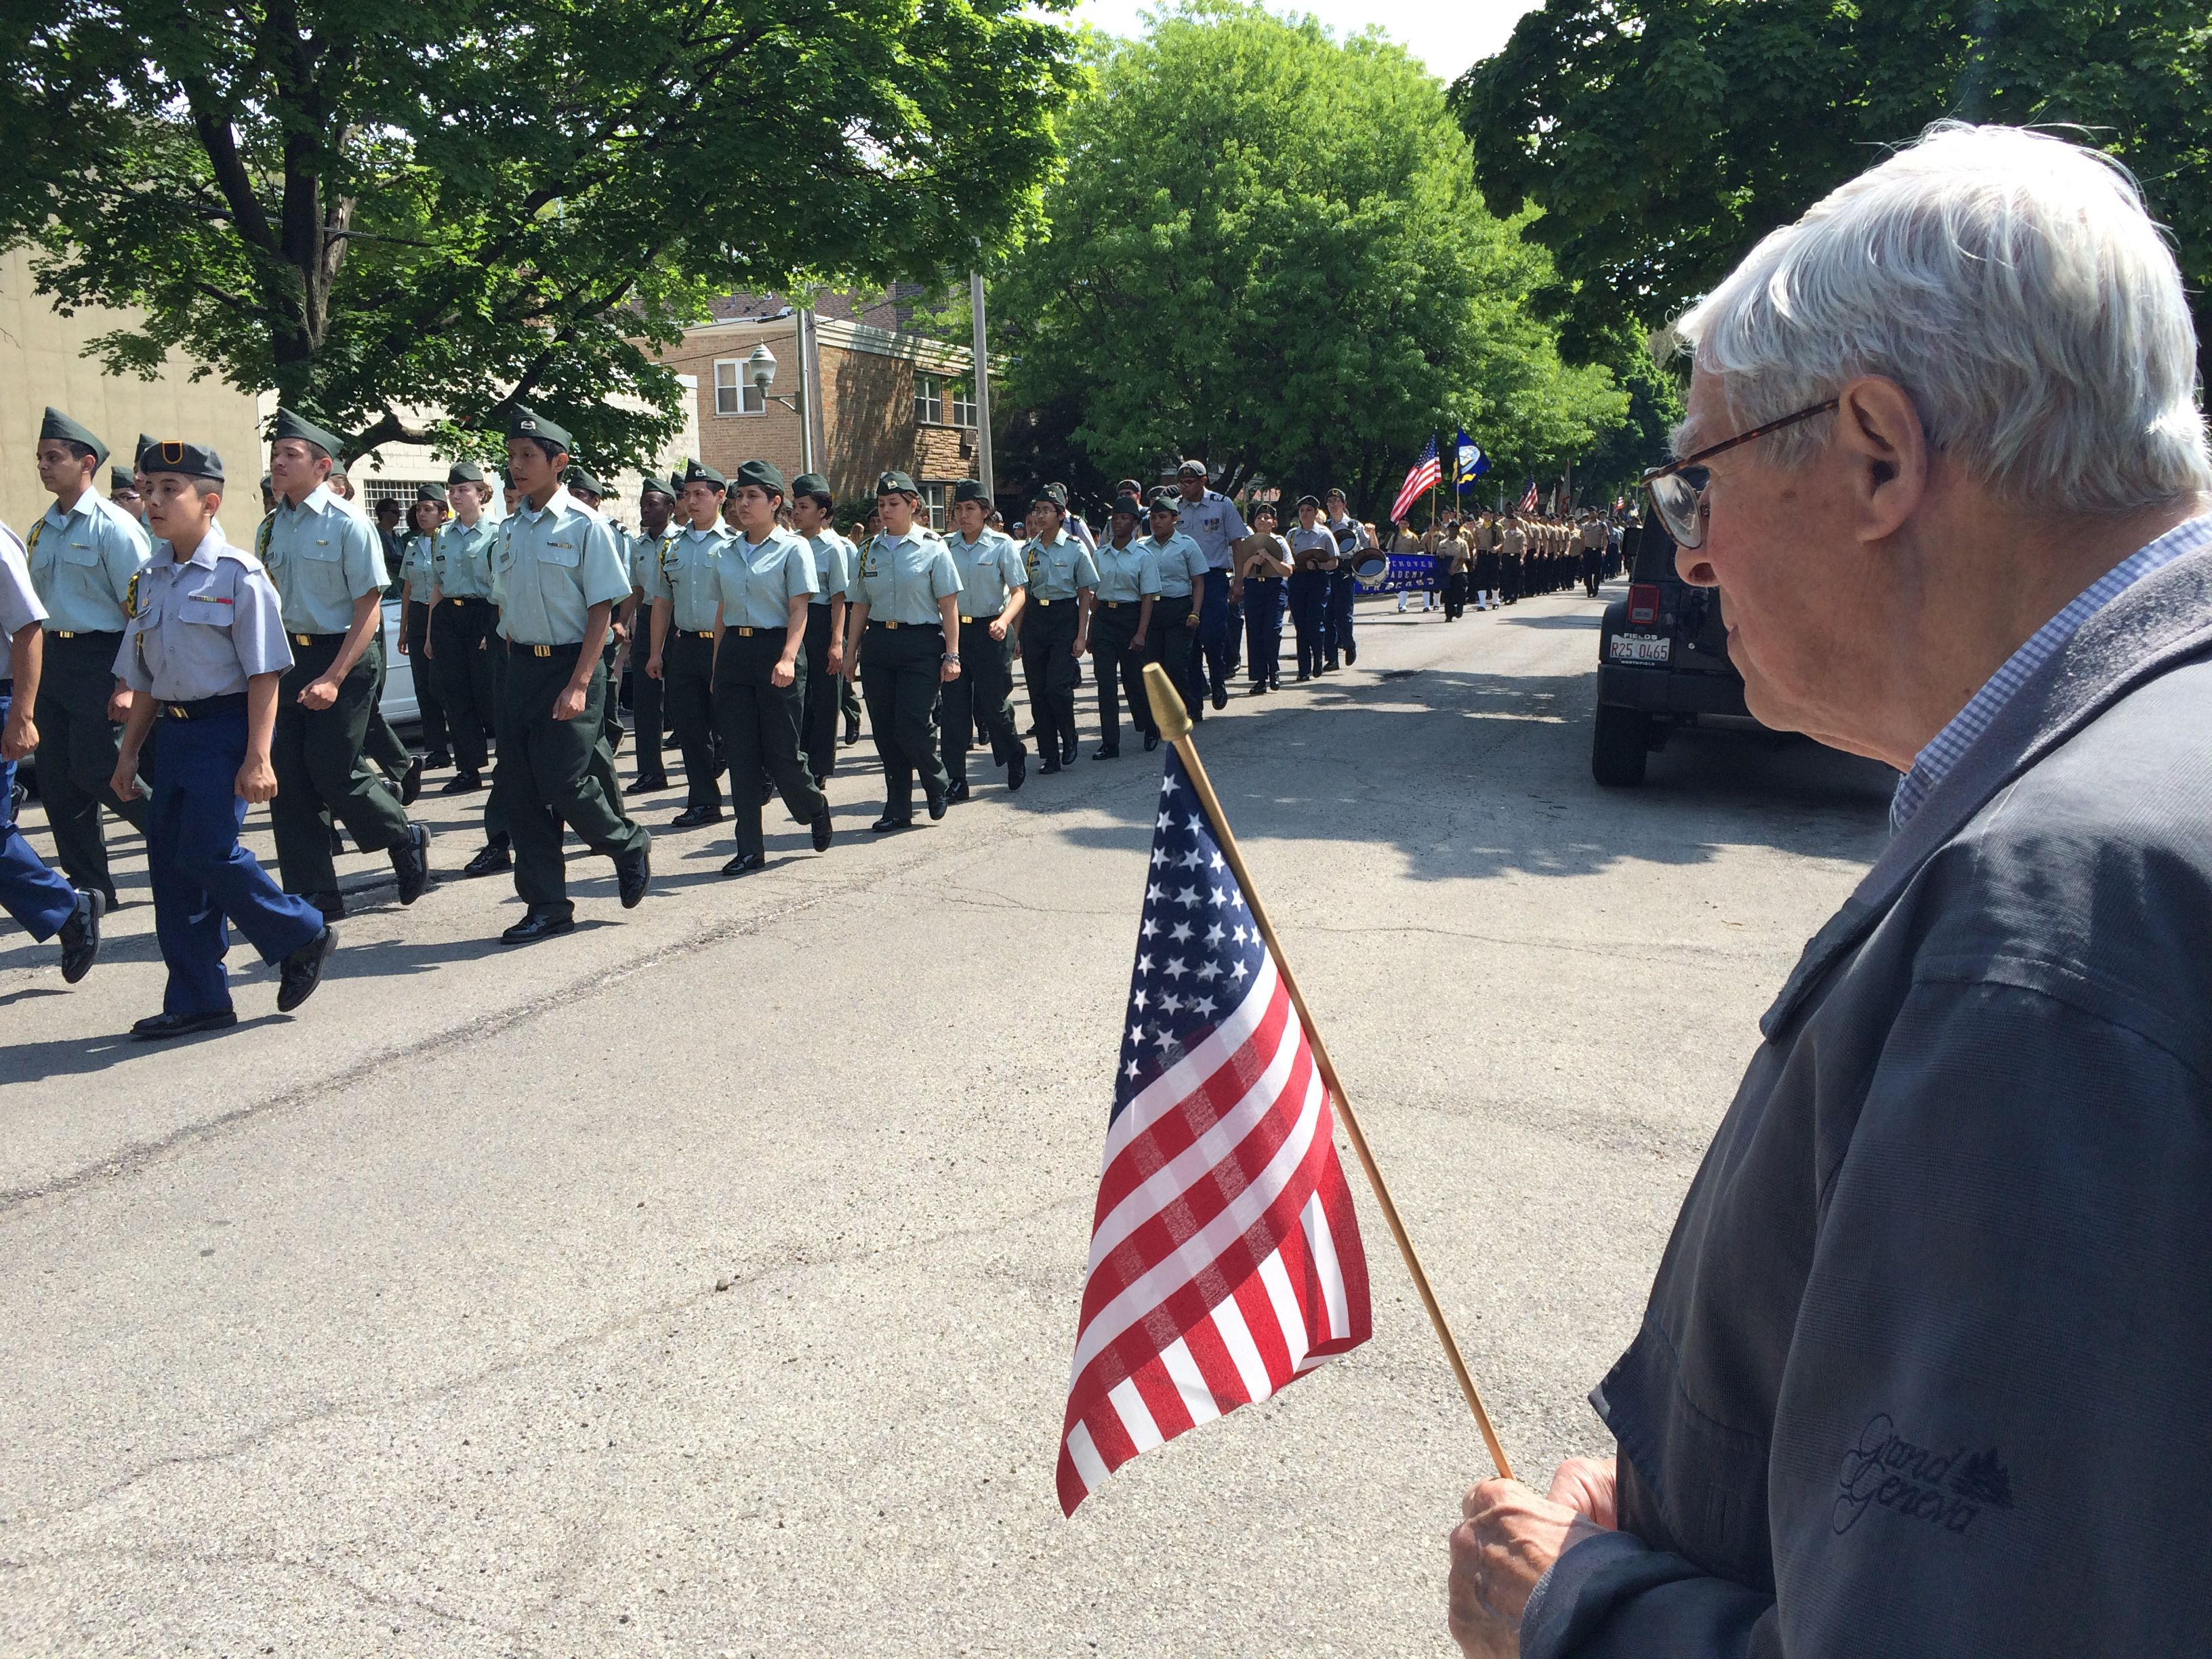 Veteran watching the Ravenswood Memorial Day Parade in Chicago's north side